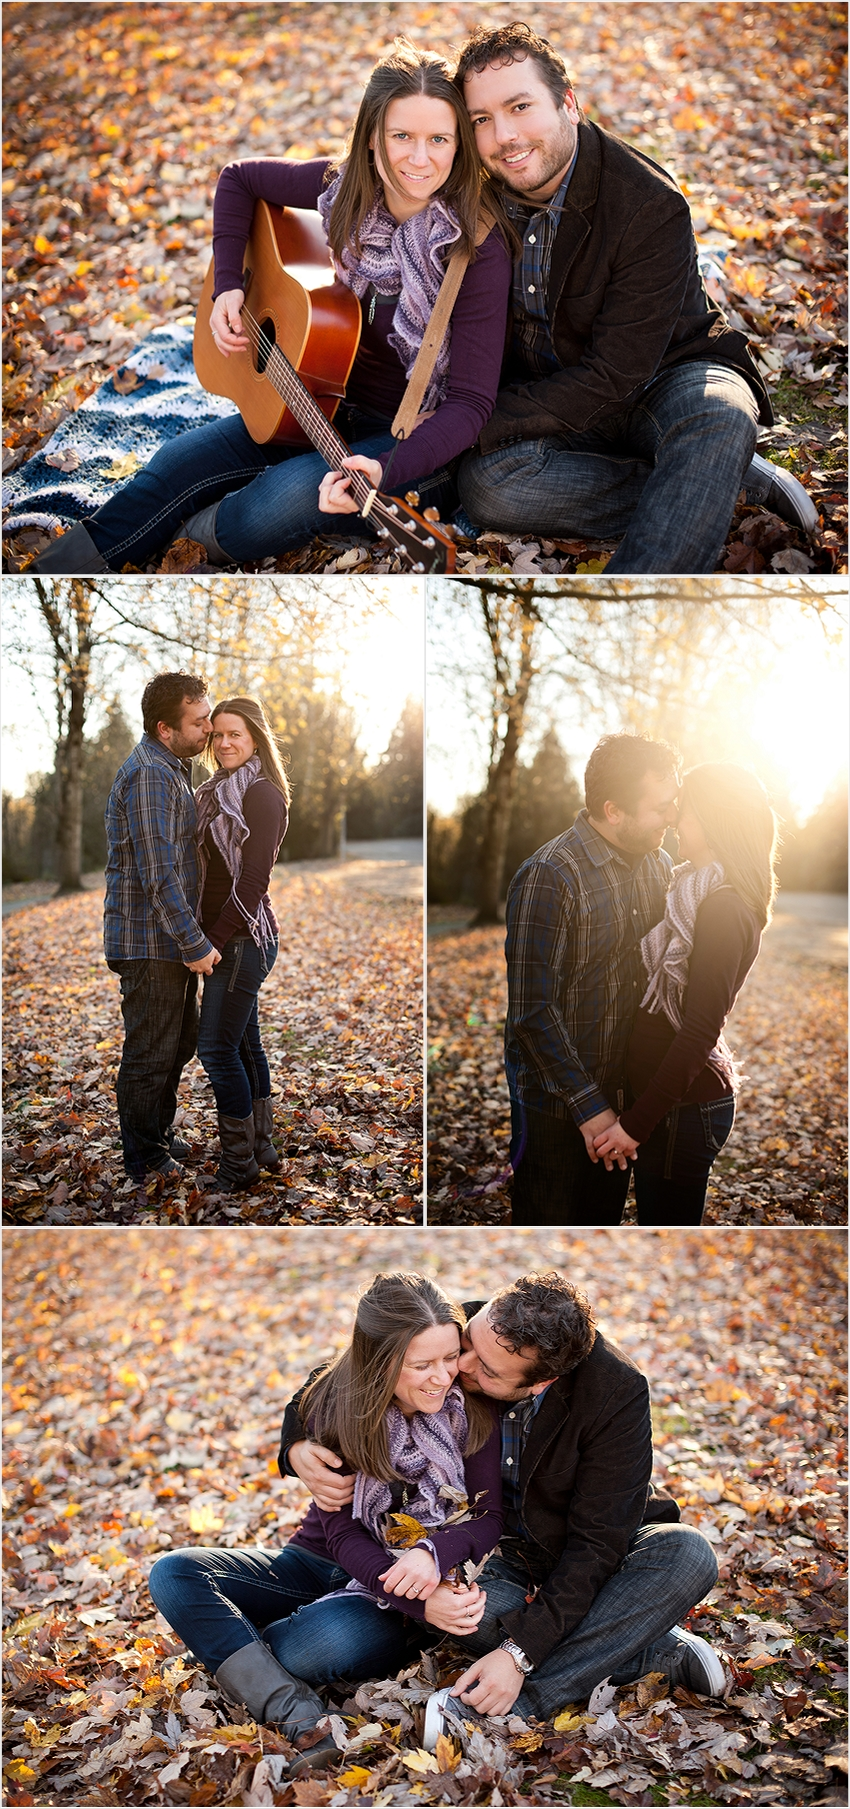 Bryan and Angela engagement photos falling autumn leaves